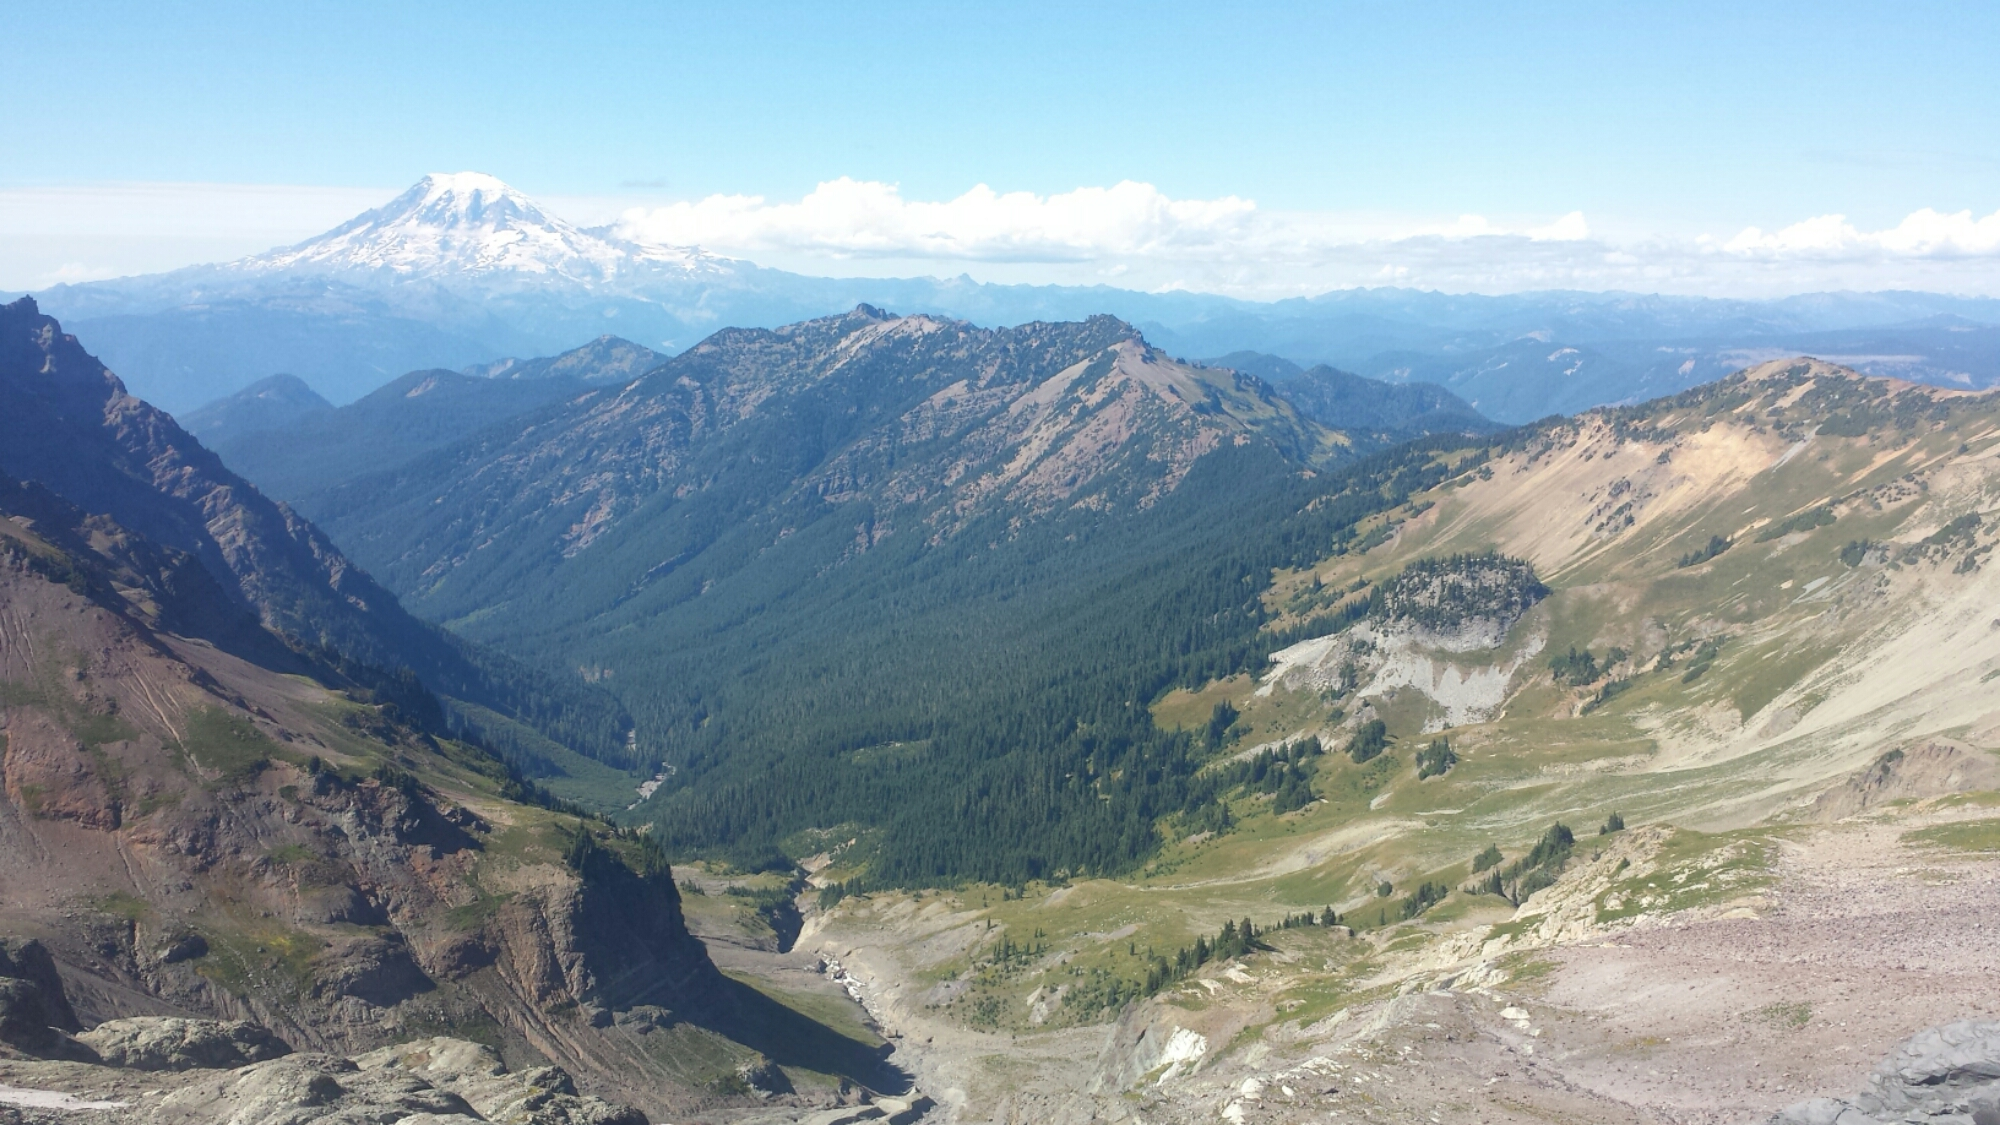 Mount Rainier viewed from Snowy Mountain